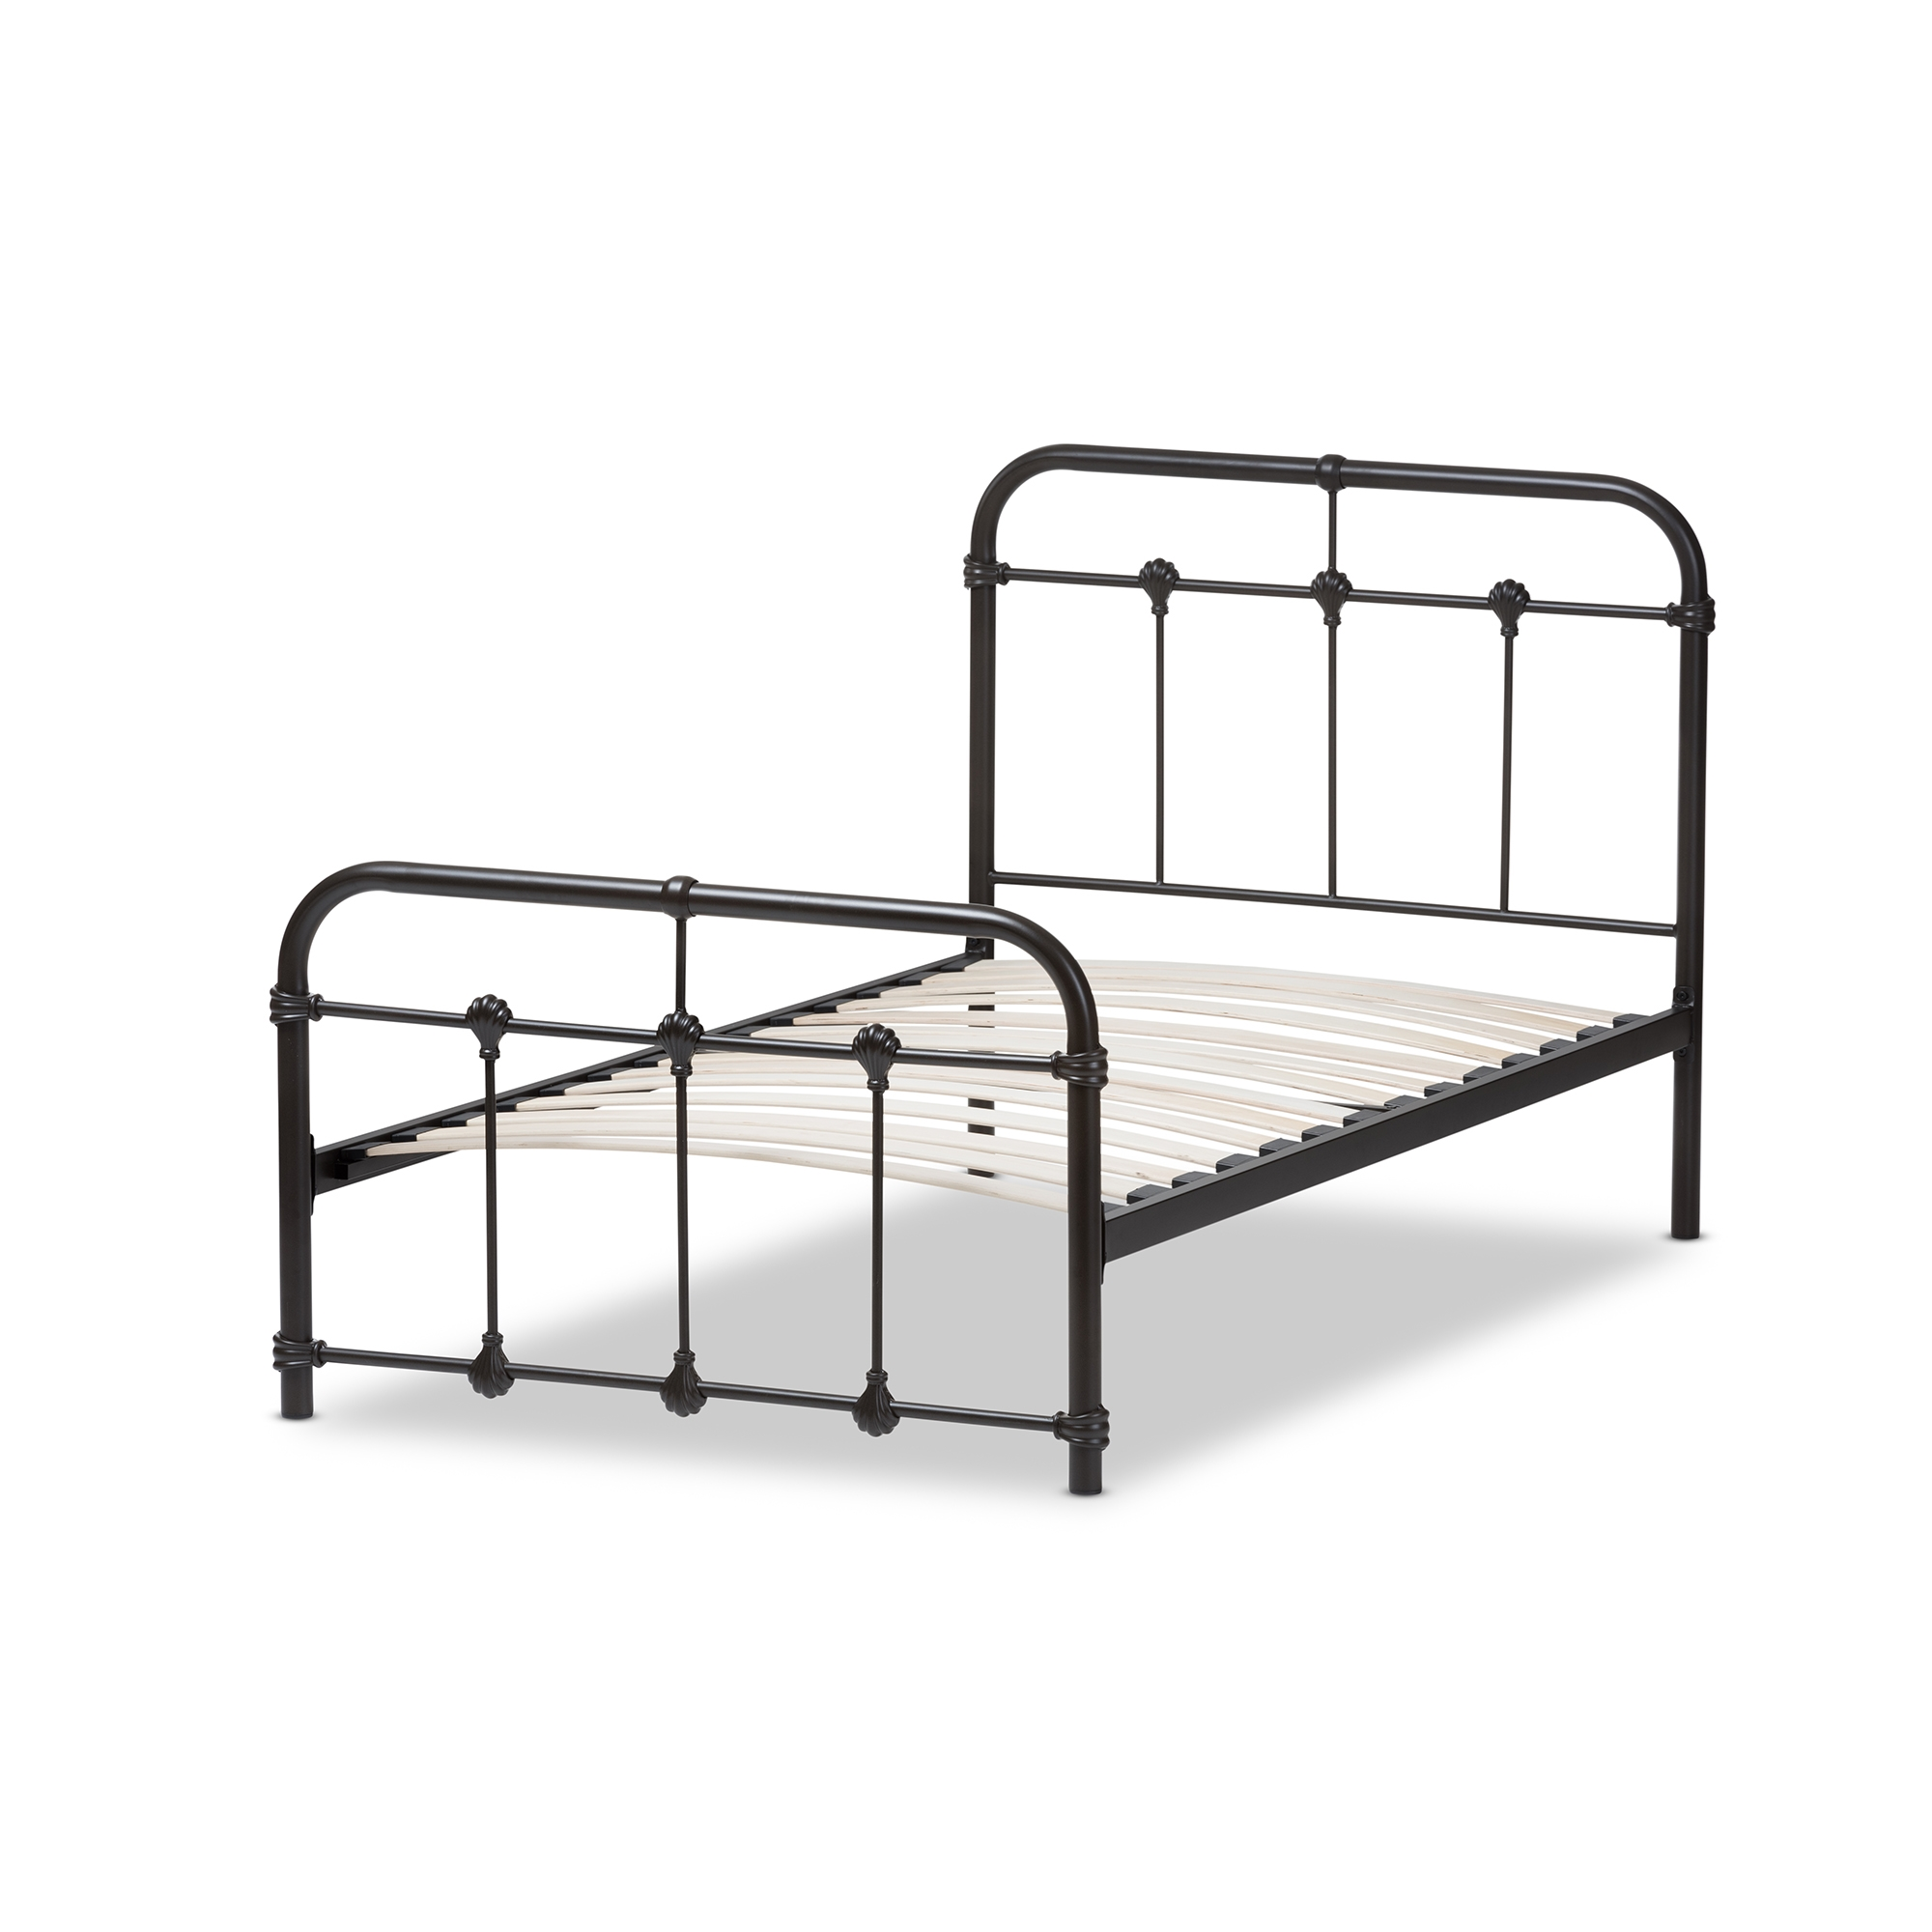 baxton studio mandy industrial style antique dark bronze twin size metal platform bed iets105